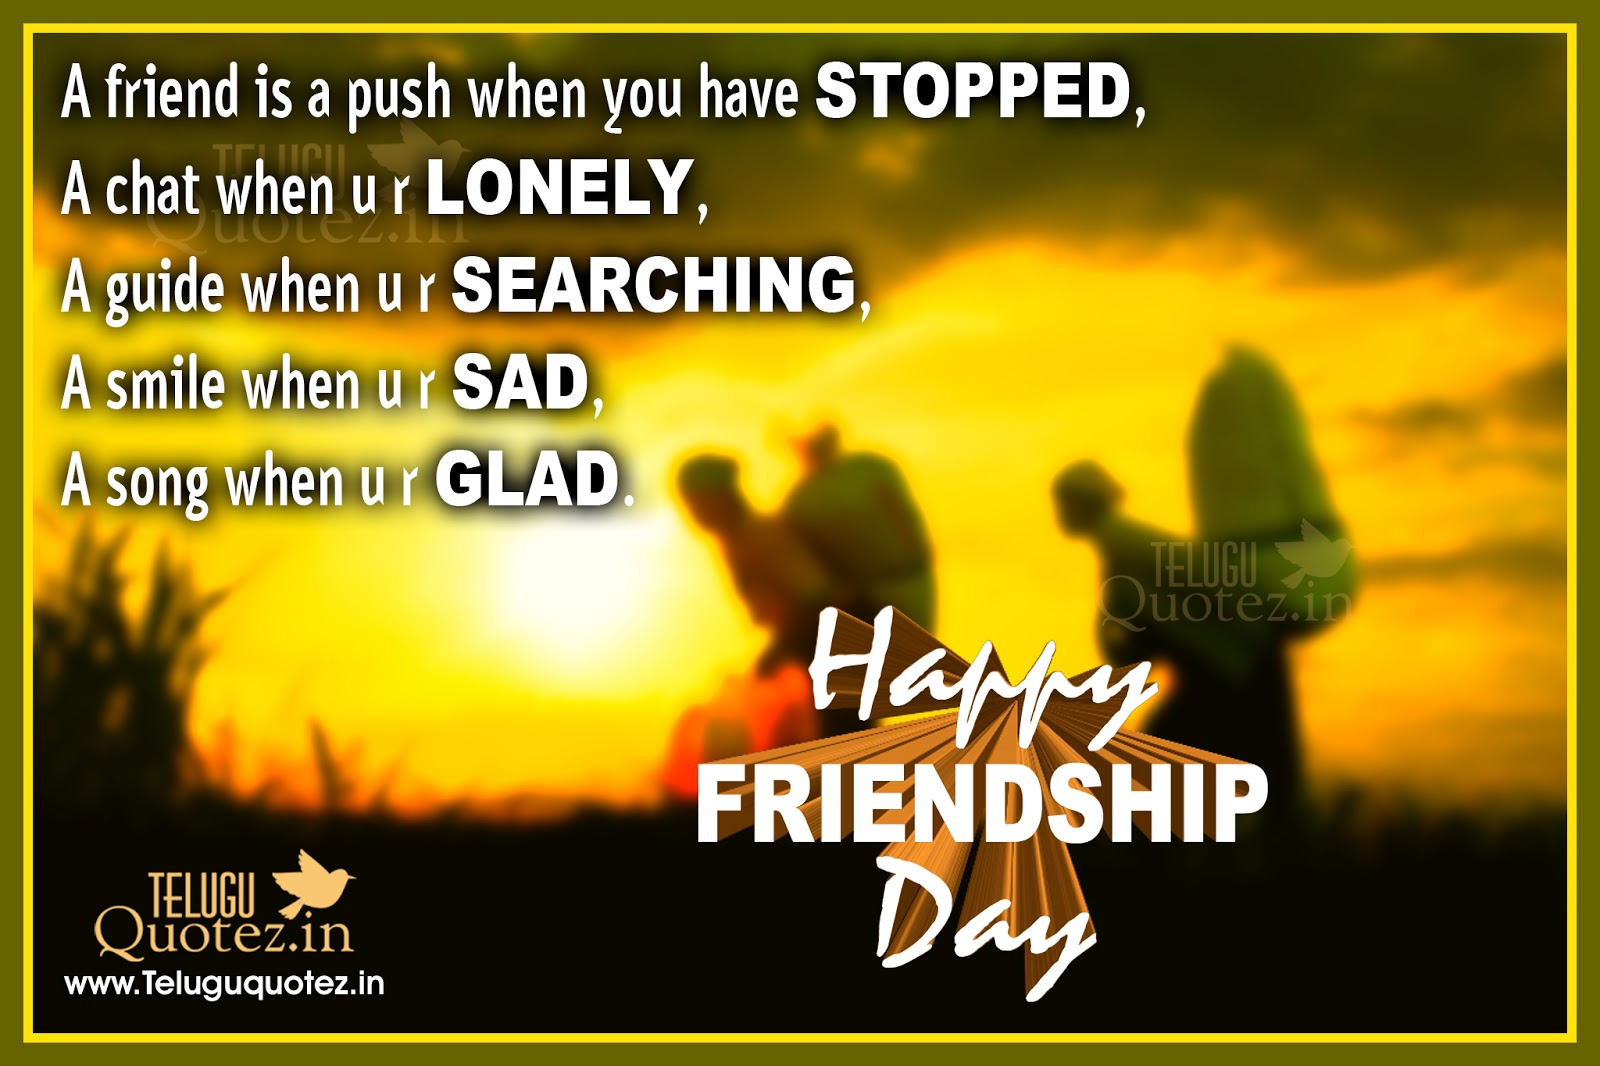 Friendship Day Date 2018 In India When Is Friendship Day Quotes